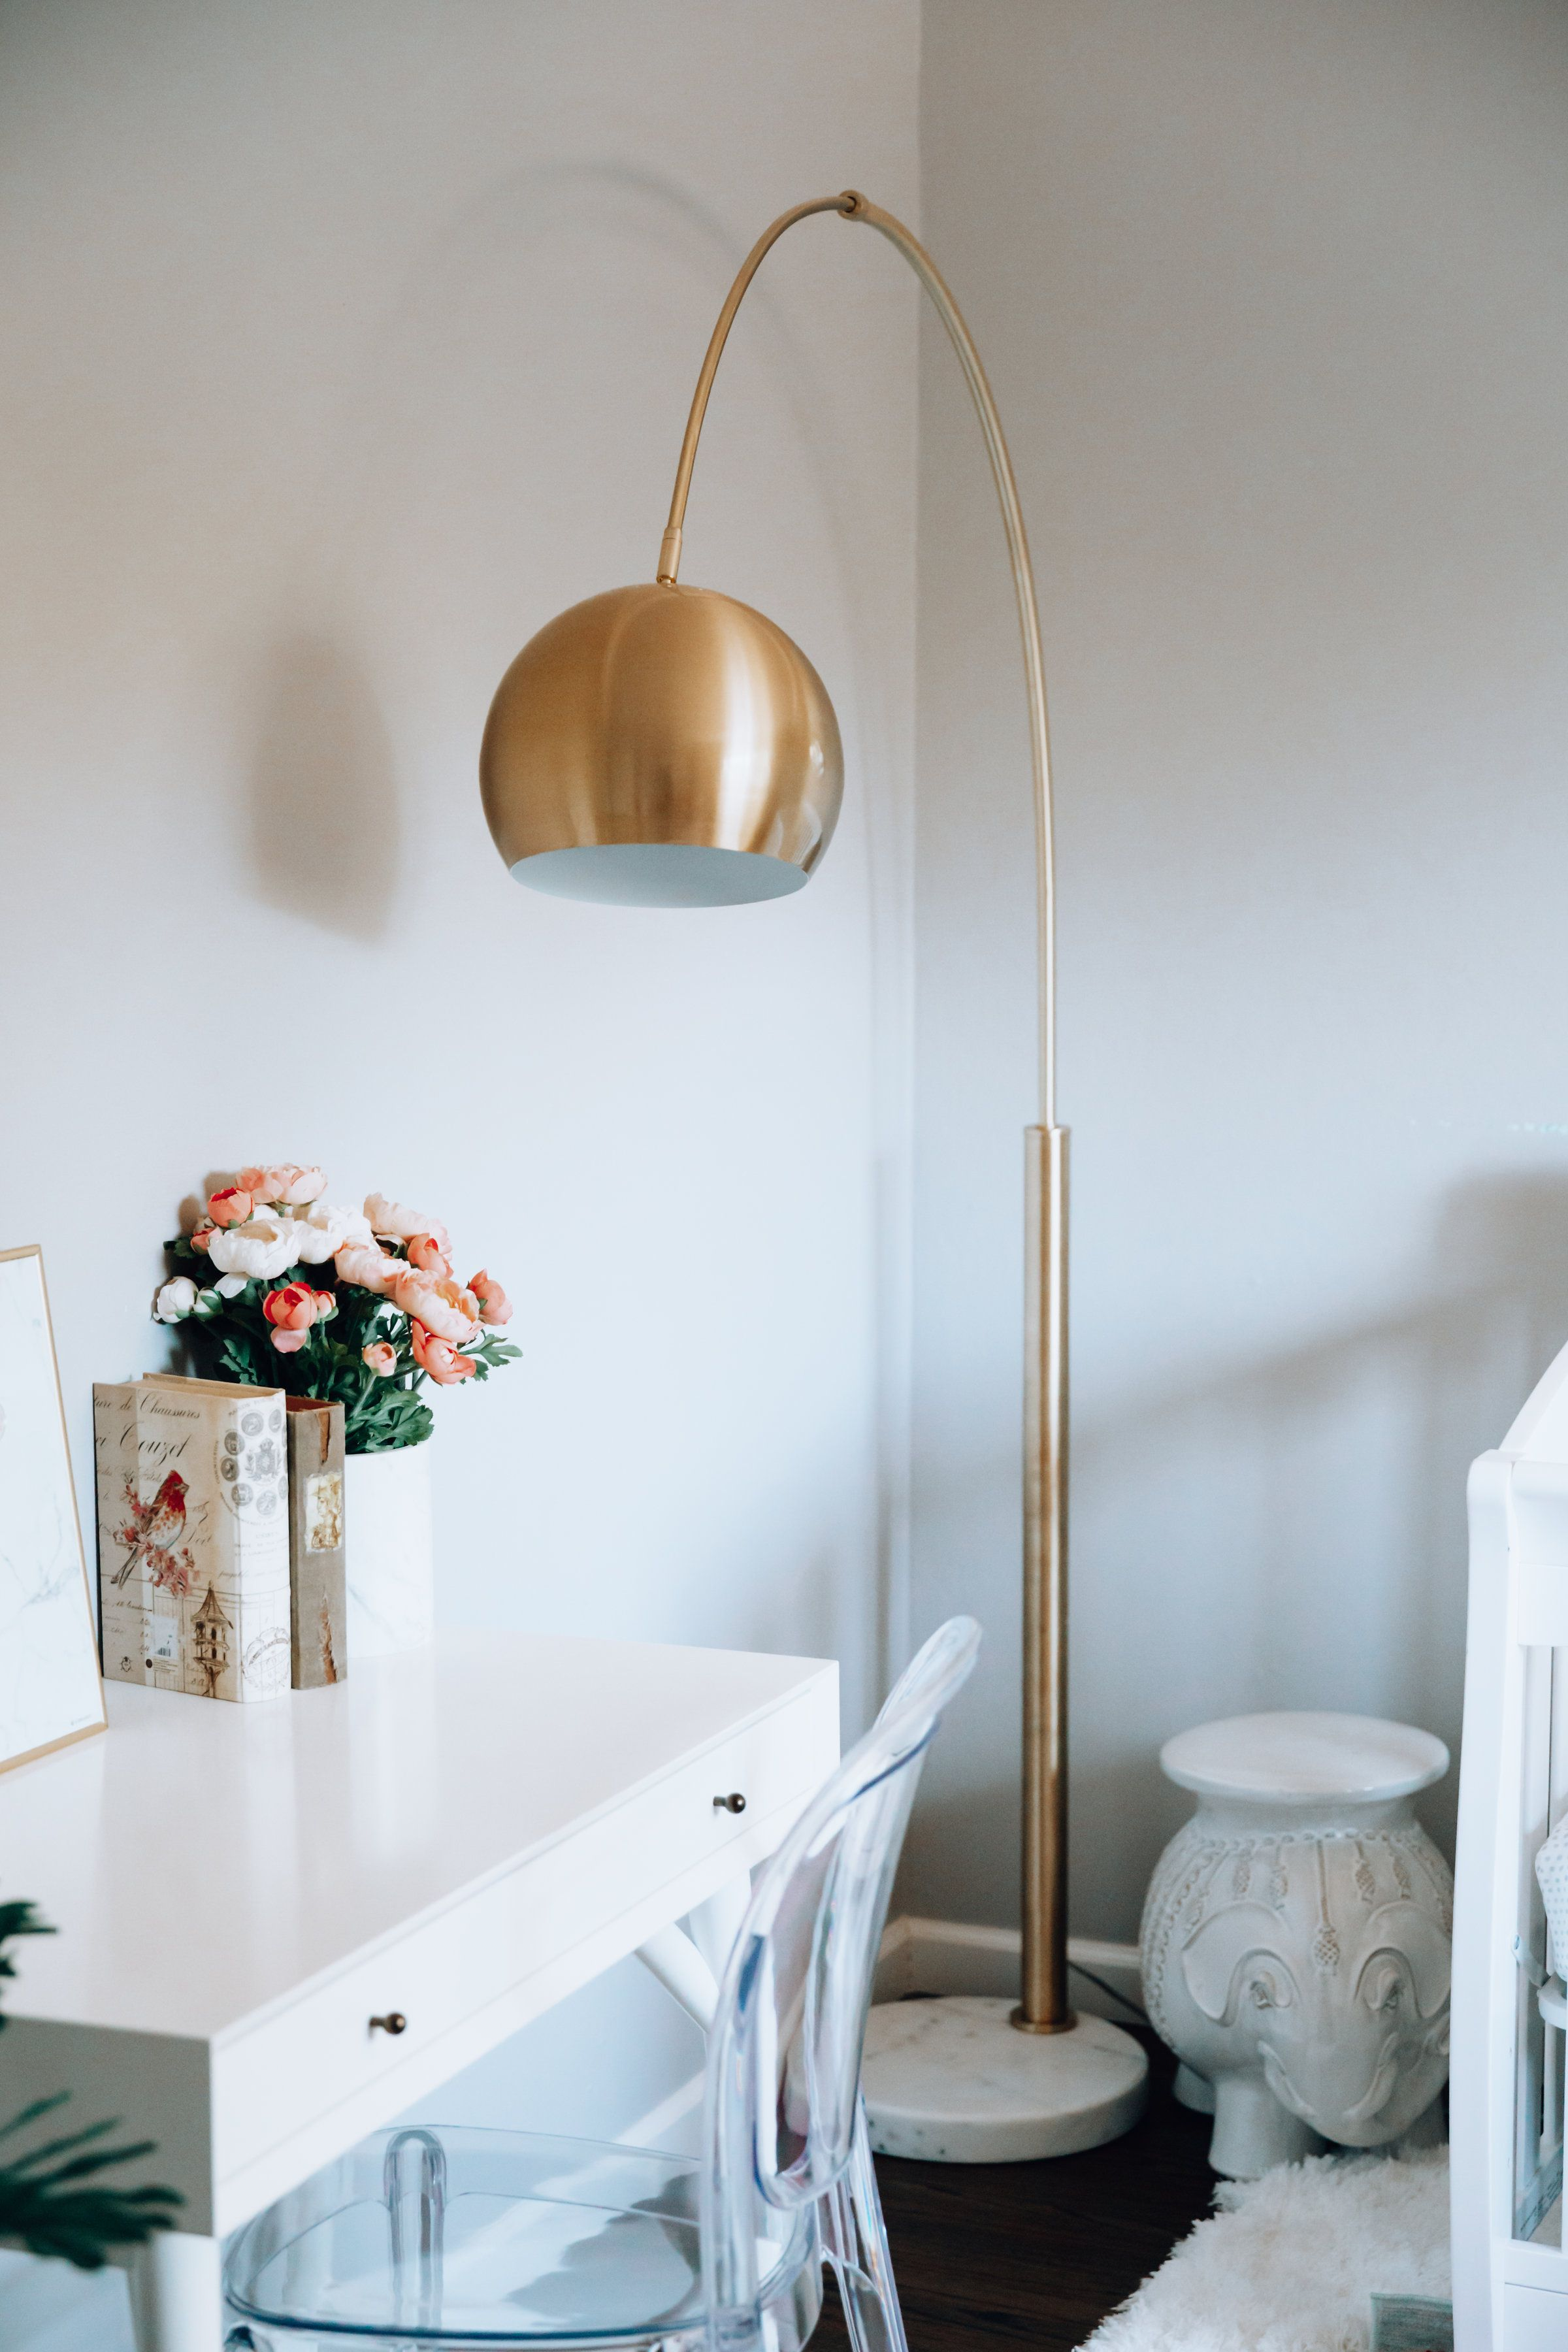 We changed out the lighting fixtures in home with a little help from lampsplus and i cannot believe what a difference it made our whole home feels more